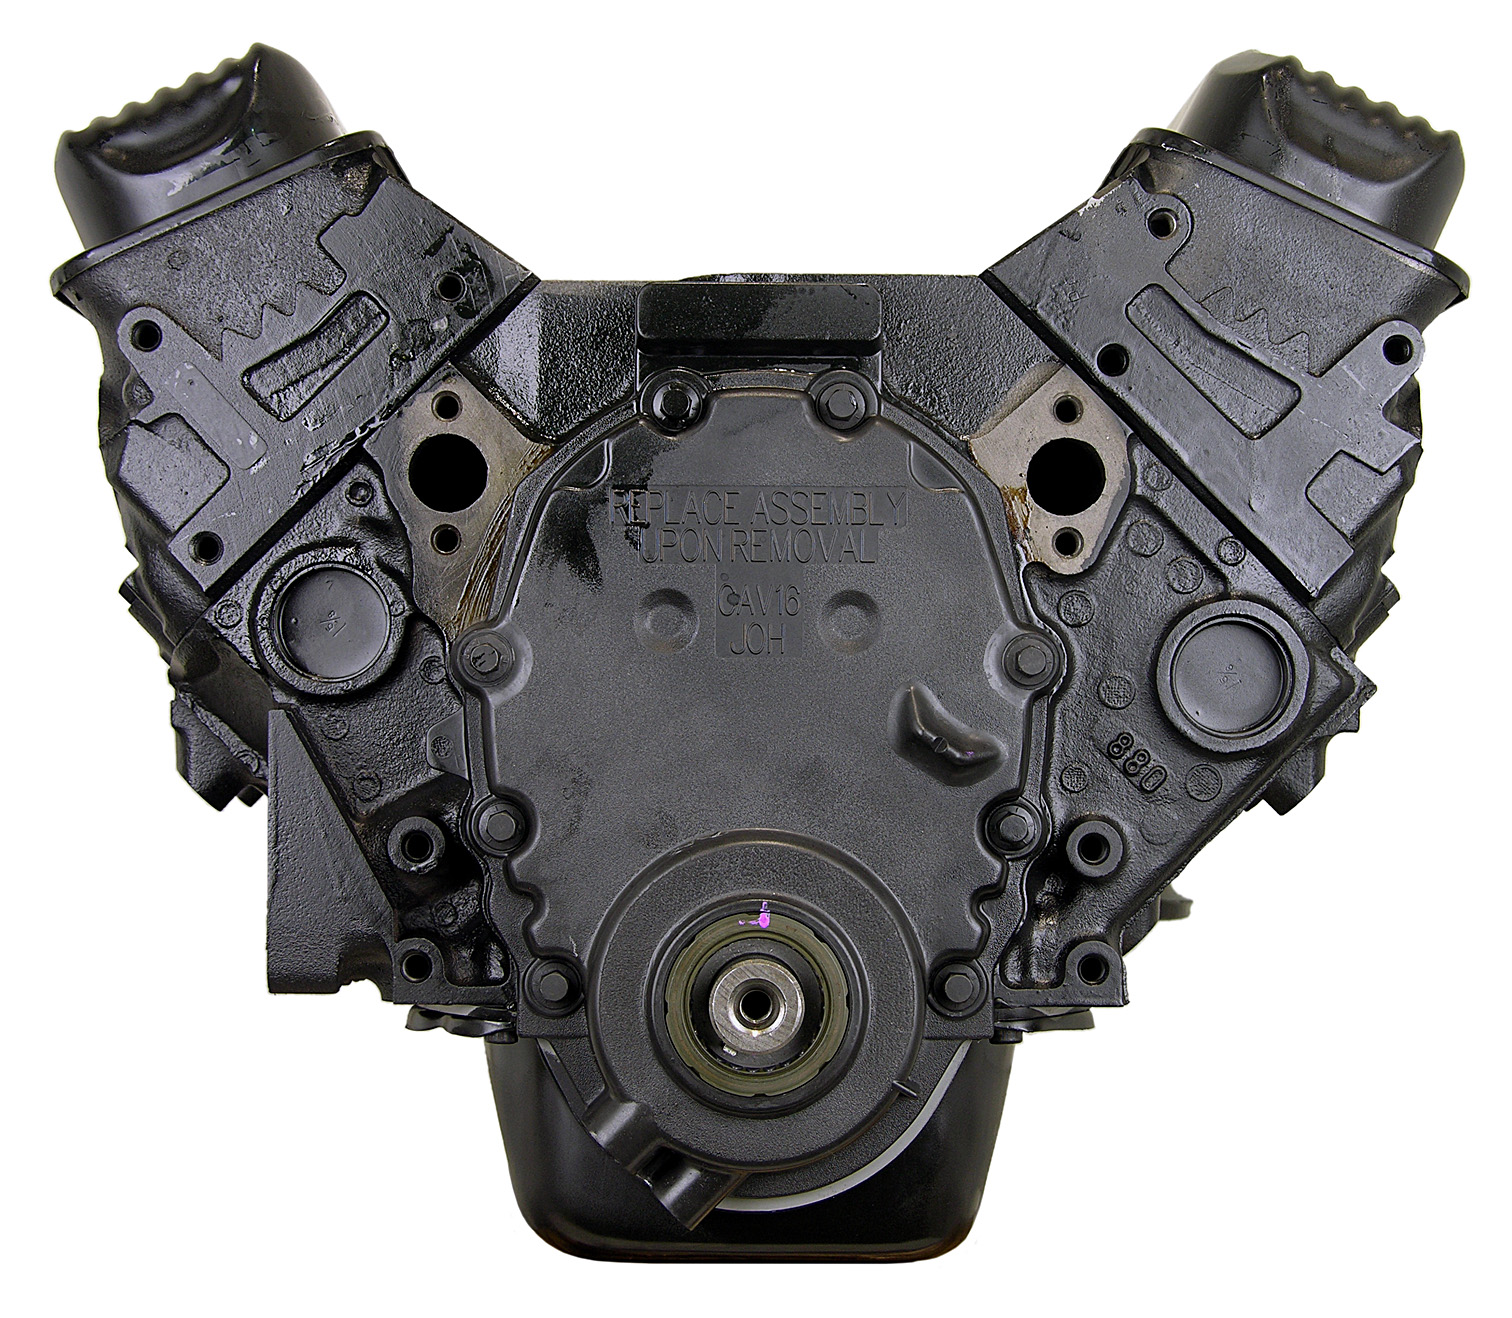 Chevy 350 Engine 1996-2000